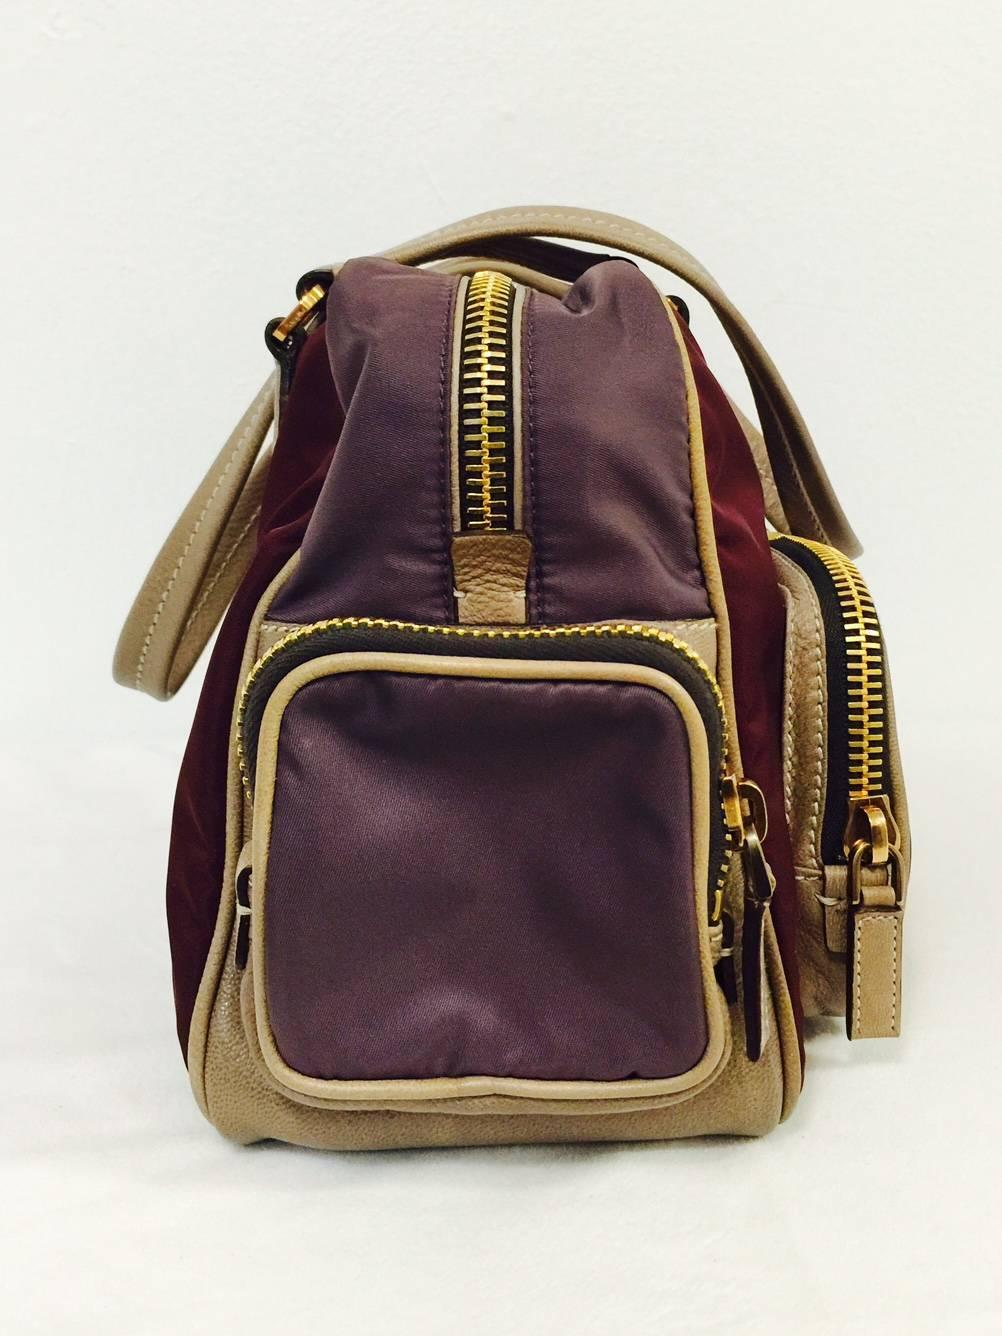 9dd8a32c5983c6 Prada Bag With Gold Hardware   Stanford Center for Opportunity ...